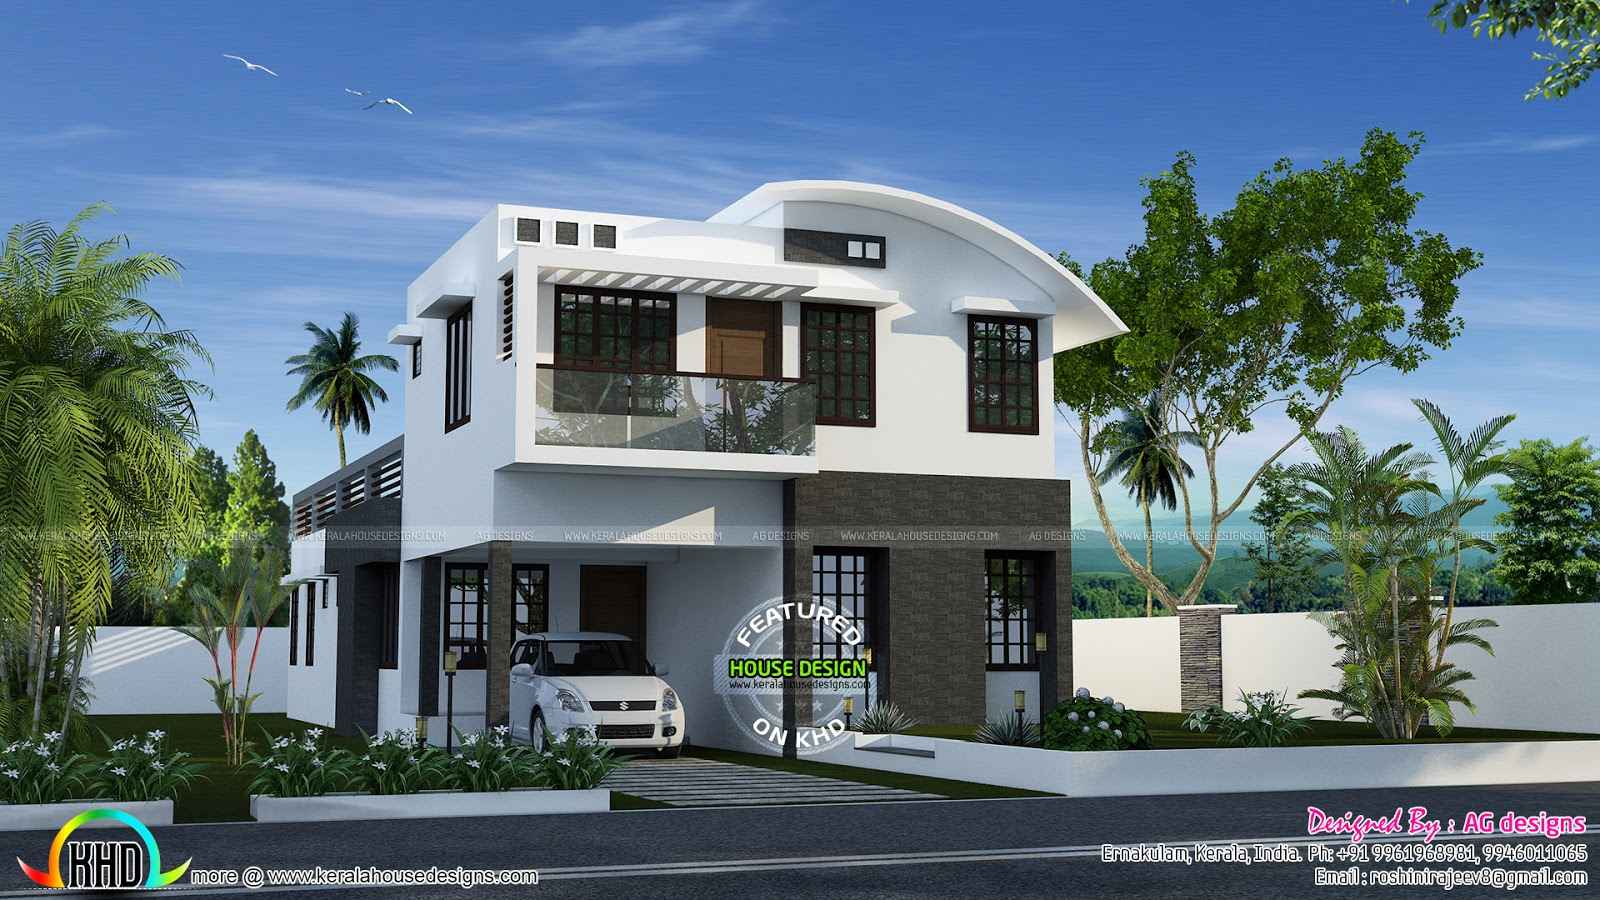 Roof Design Ideas: 232 Sq-m Curved Roof Mix House Plan